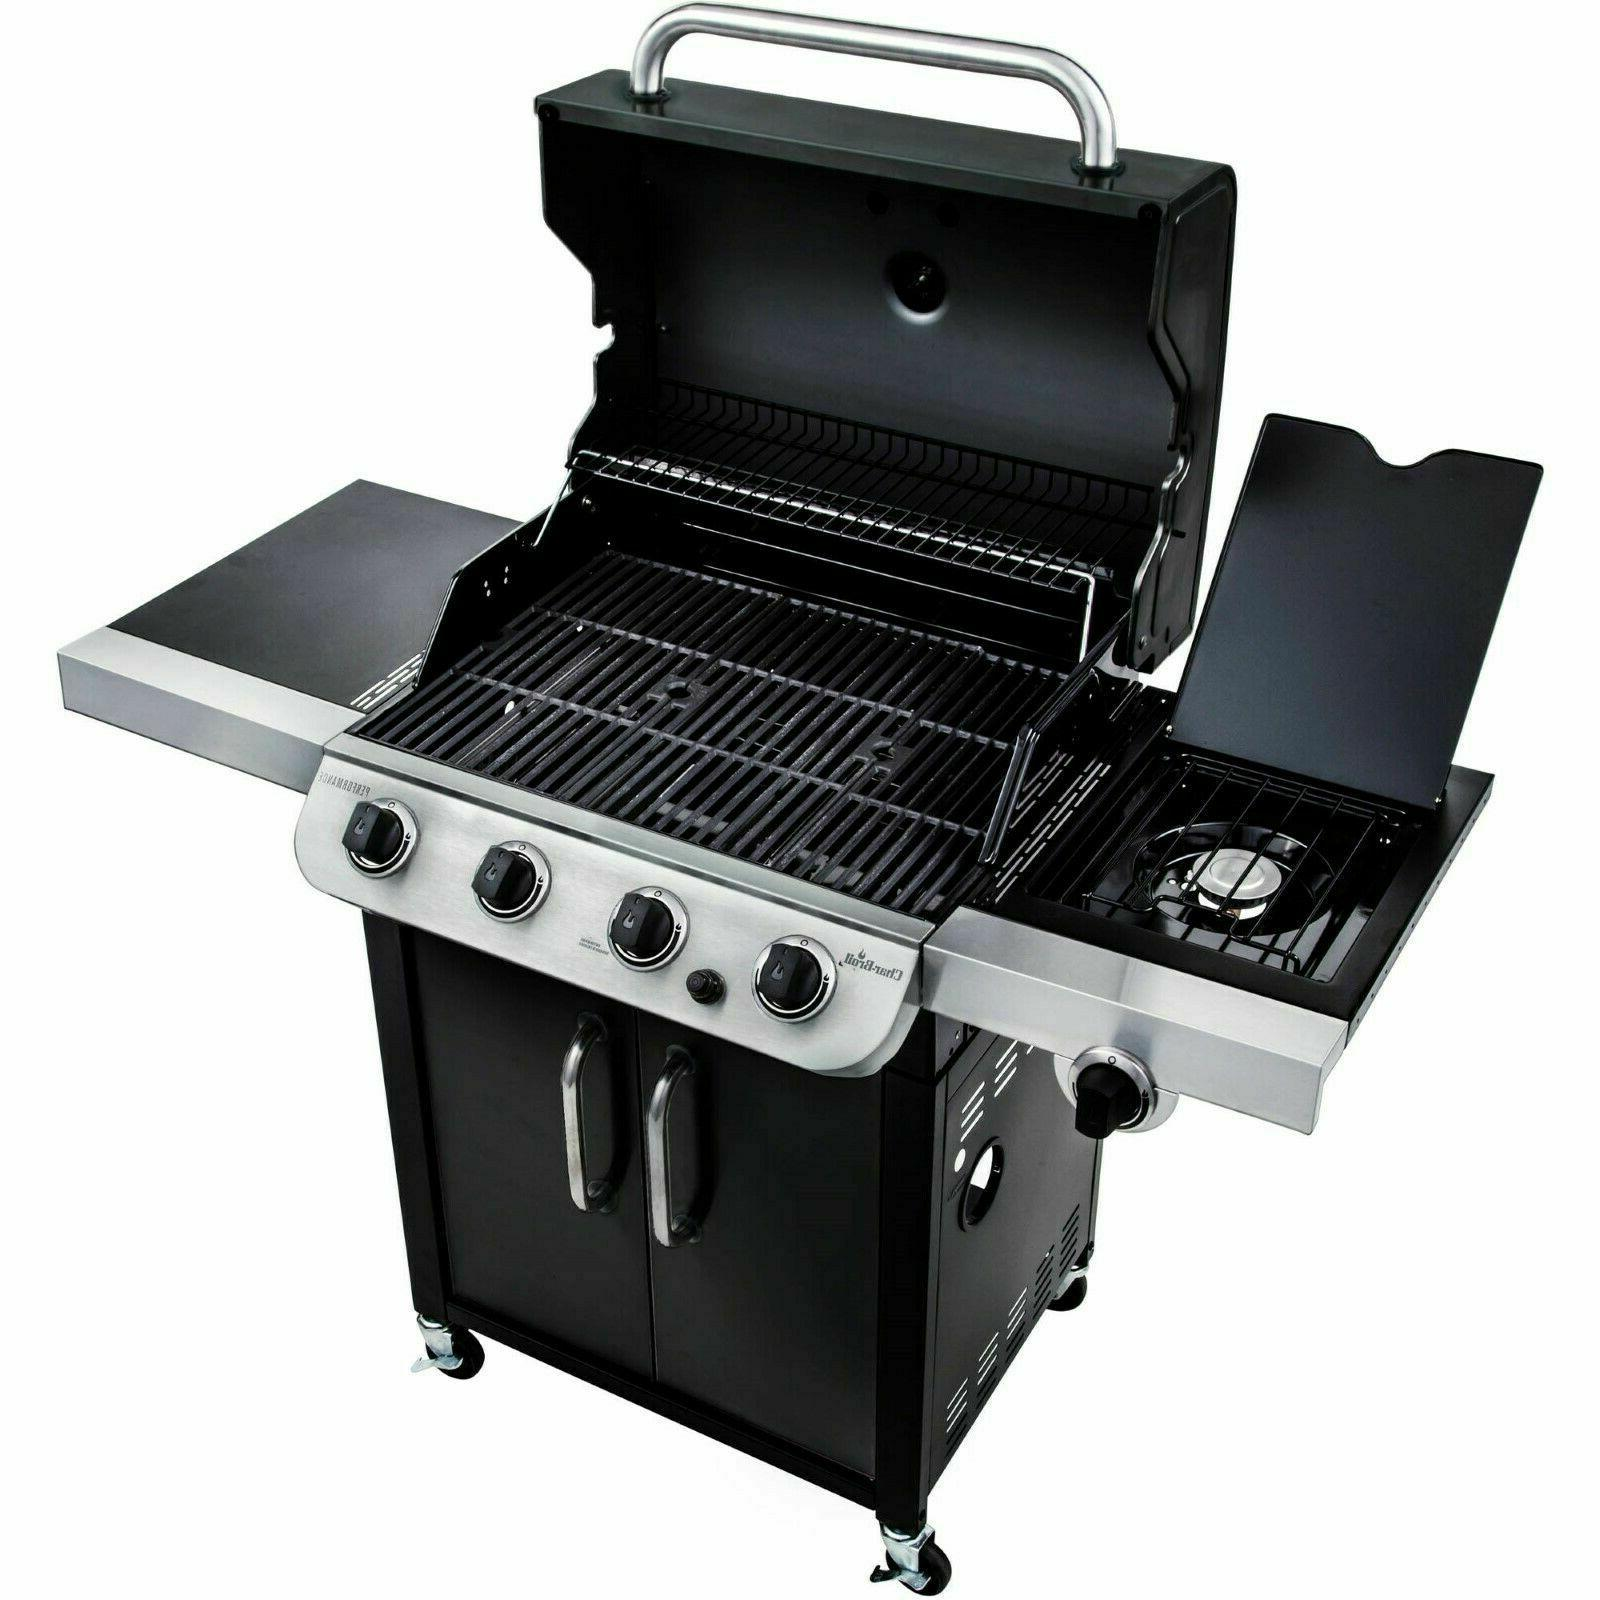 Gas Grill 4 Burner Stainless Steel Portable Outdoor Griddle